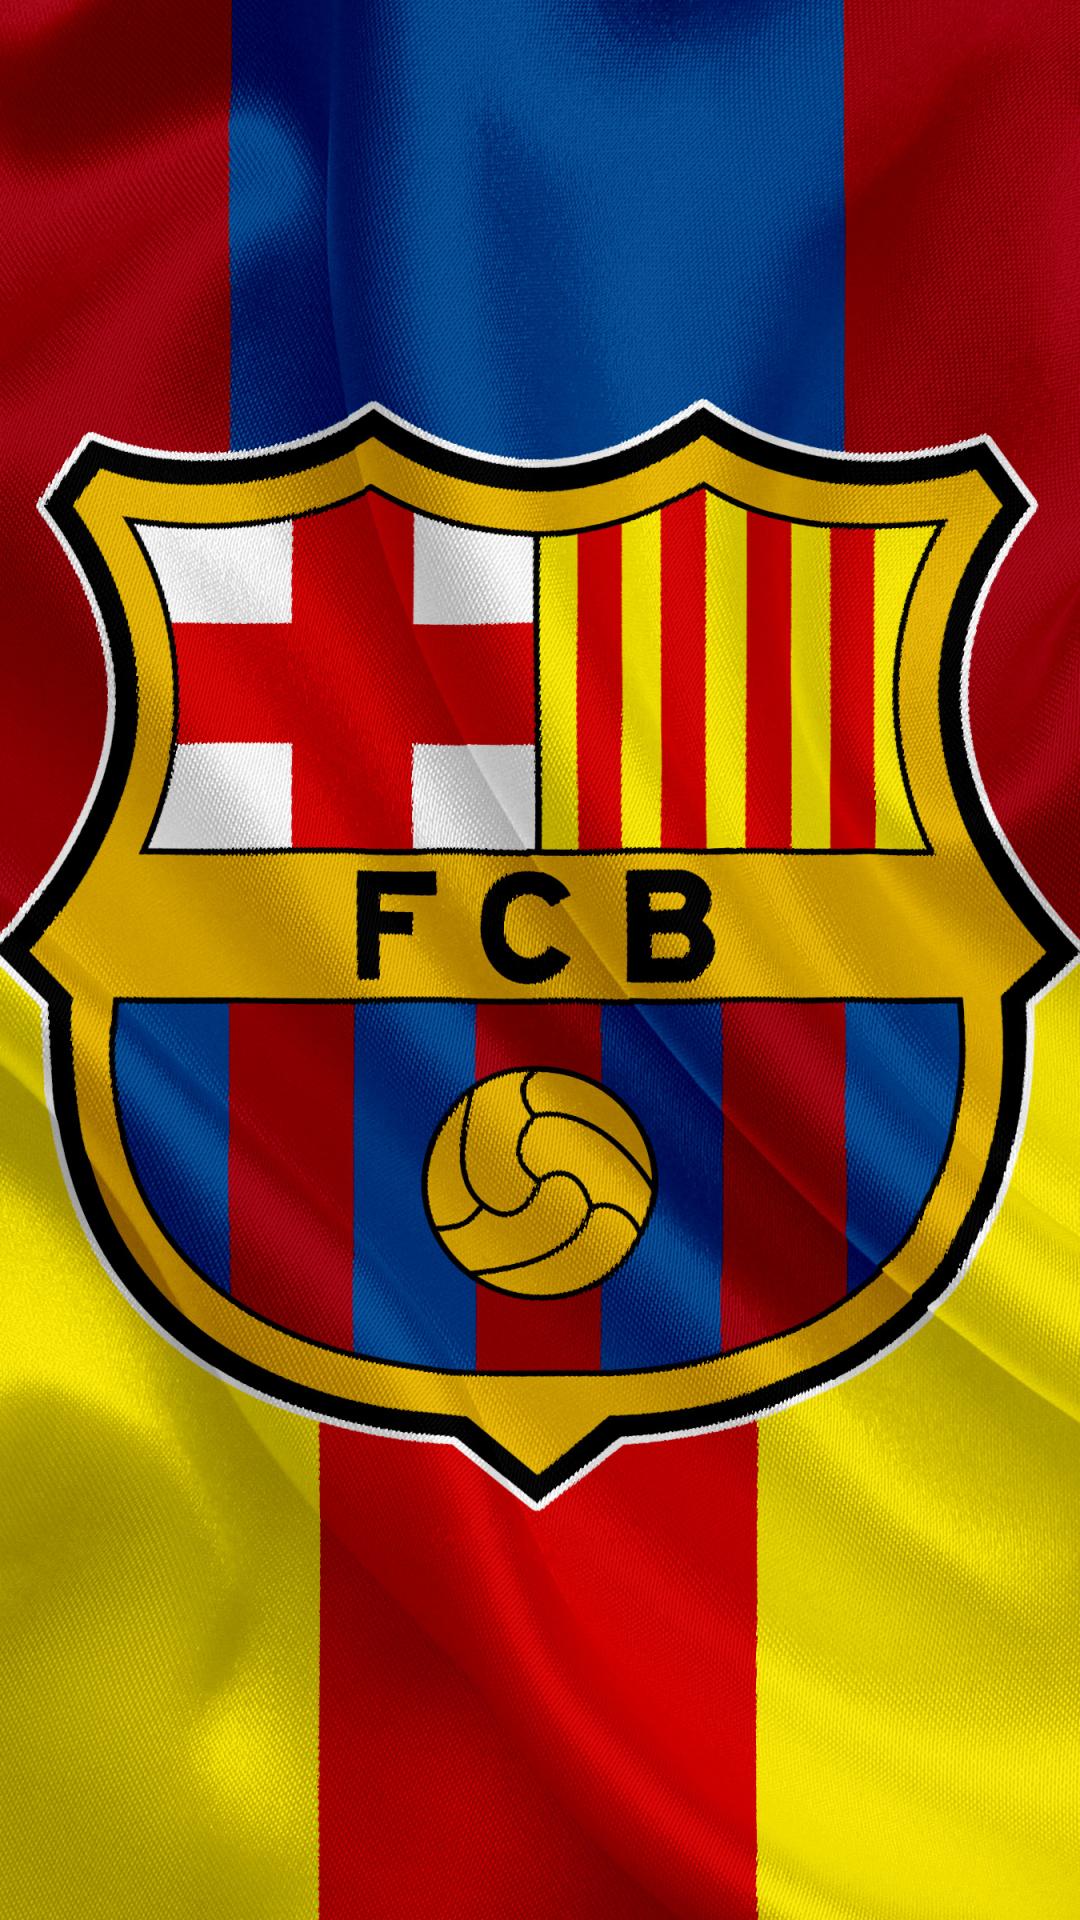 Sports FC Barcelona 1080x1920 Wallpaper ID